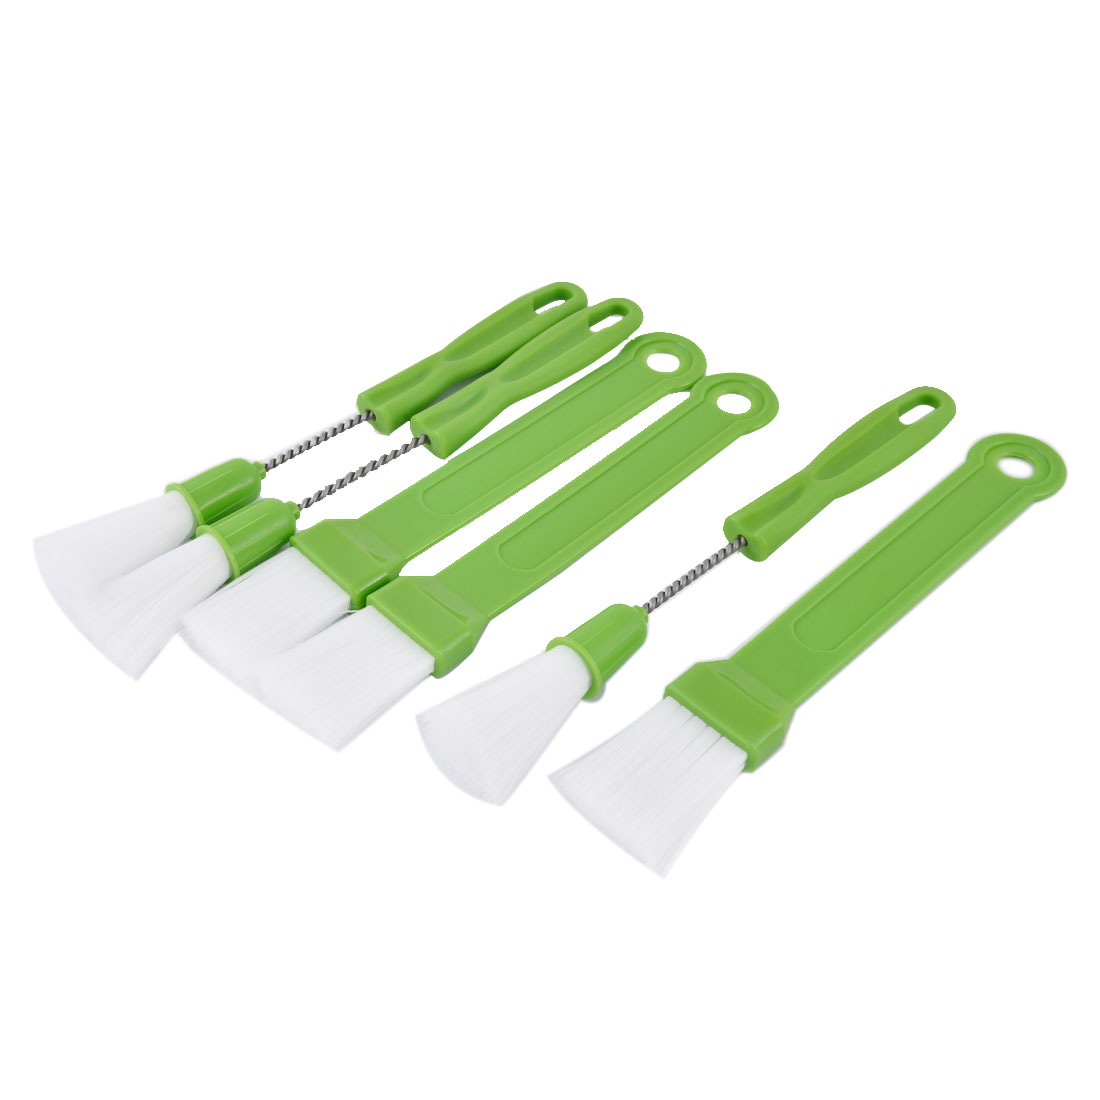 Unique Bargains 3 Sets Light Green Outdoor Indoor Barbecue BBQ Grill Plastic Grip Brush Cleaner